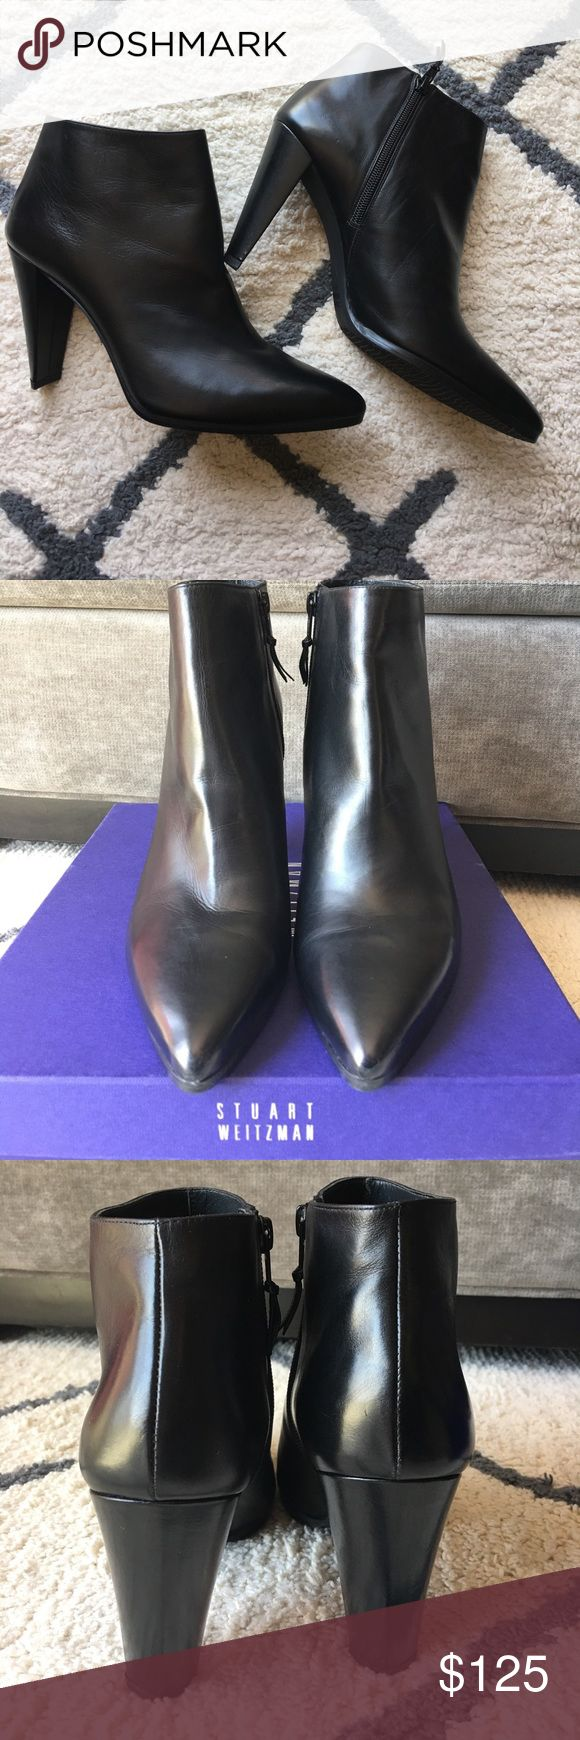 STUART WEITZMAN CARLTONE BLACK CLAF BOOTIES Brand new!! Never worn black ankle booties purchased at Neman Marcus.  Comes with box. Stuart Weitzman Shoes Heeled Boots